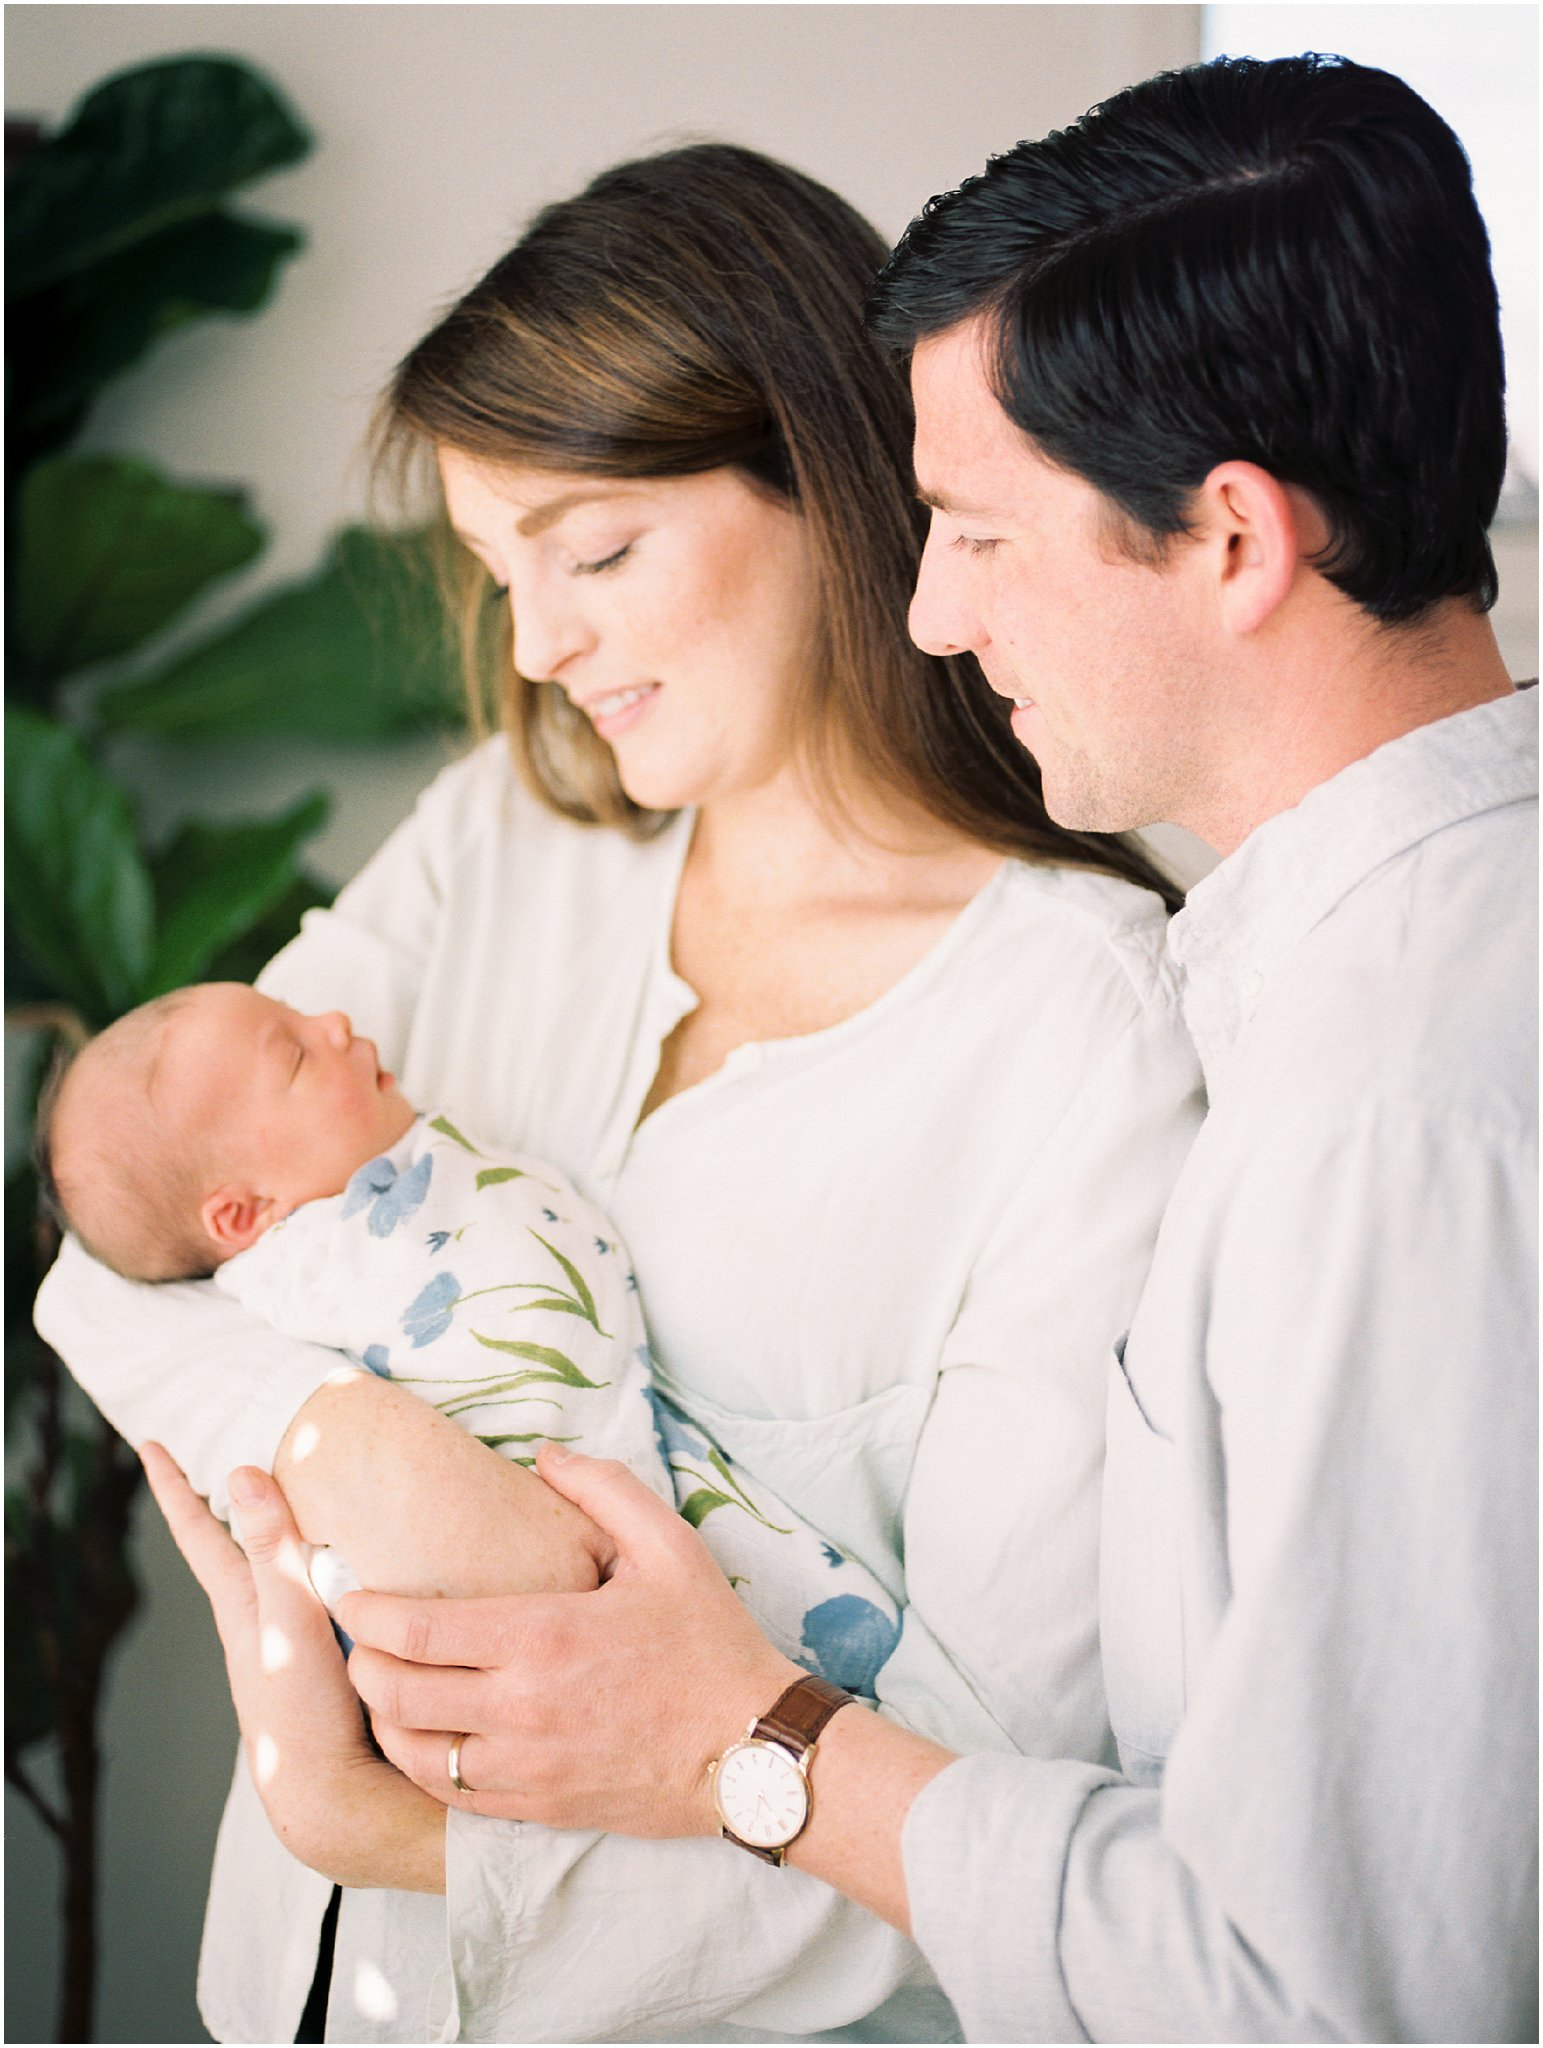 charlottesville in-home newborn session on film by charlottesville newborn & family photographer, amy nicole photography_0028